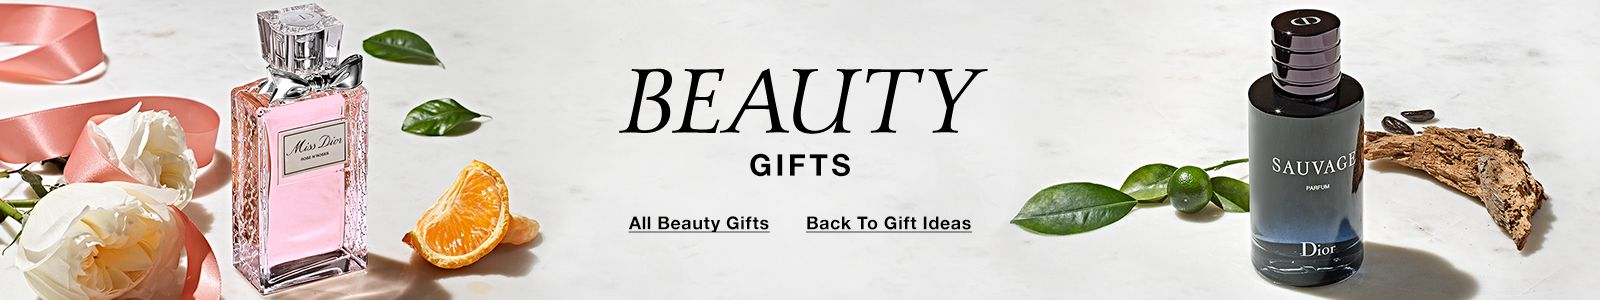 Beauty Gifts, All Beauty Gifts, Back to Gift Ideas